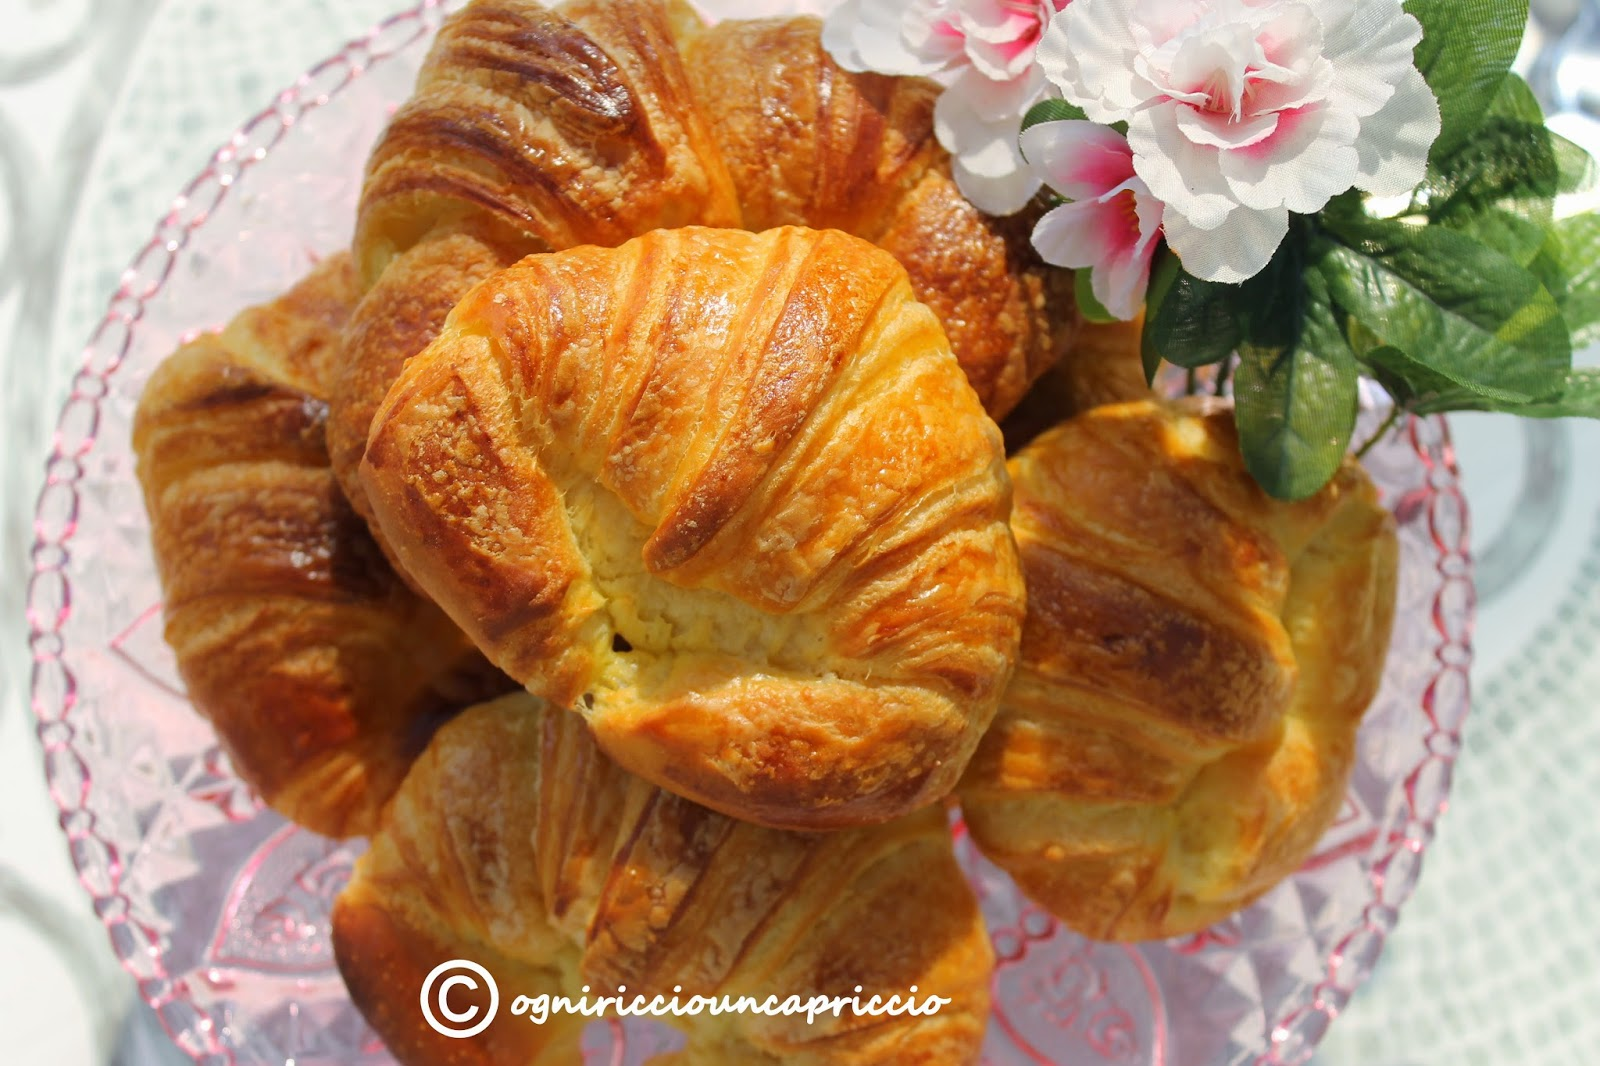 croissant come quelli del bar